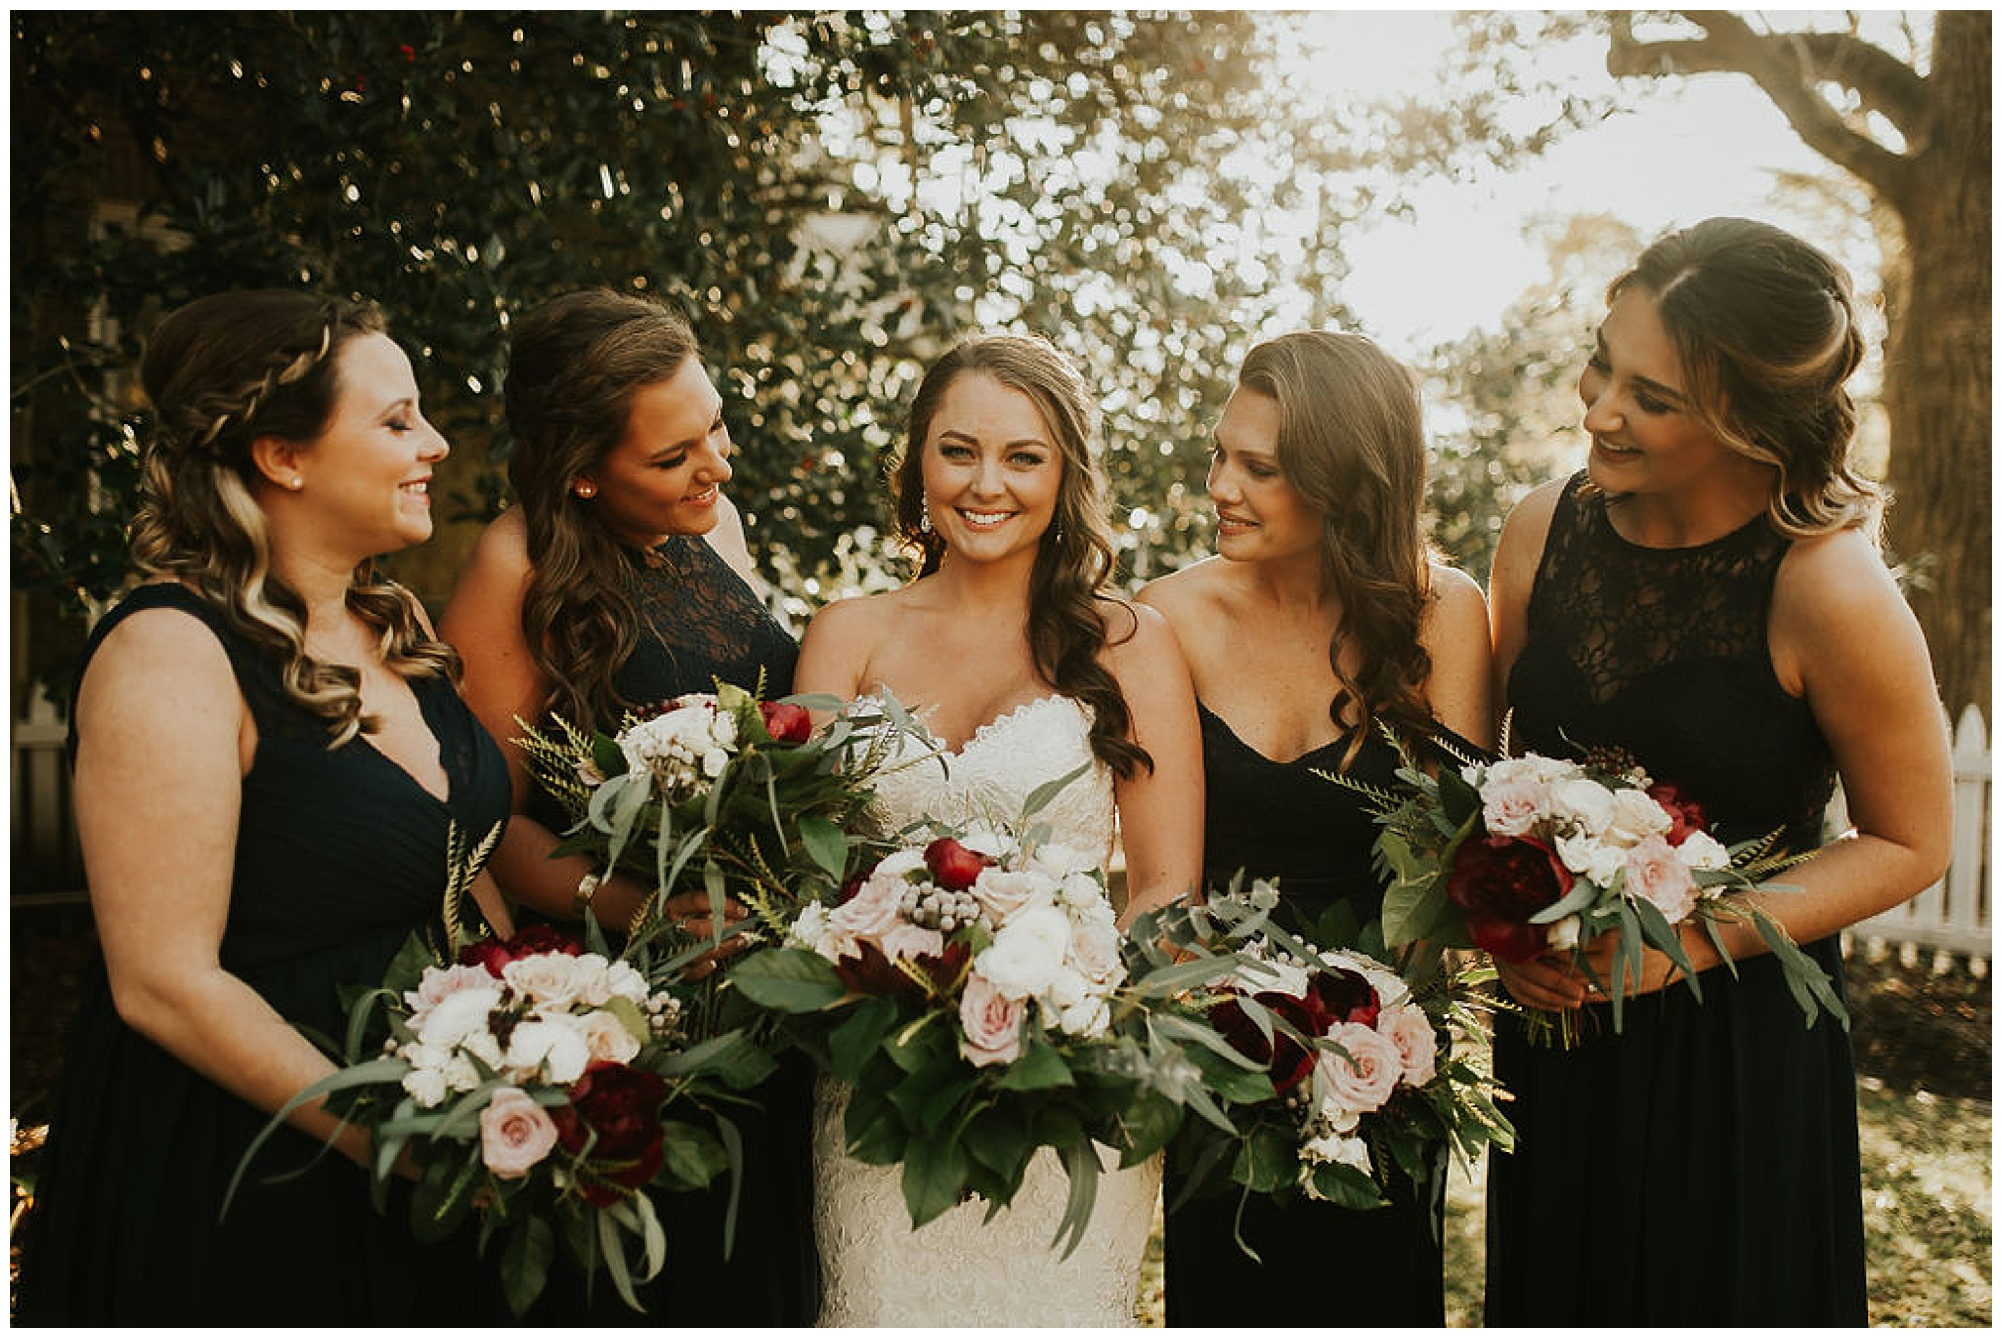 bride and bridesmaids wearing black mismatched dresses photo at the tidewater inn venue outdoors in easton maryland. autumn style fashion.